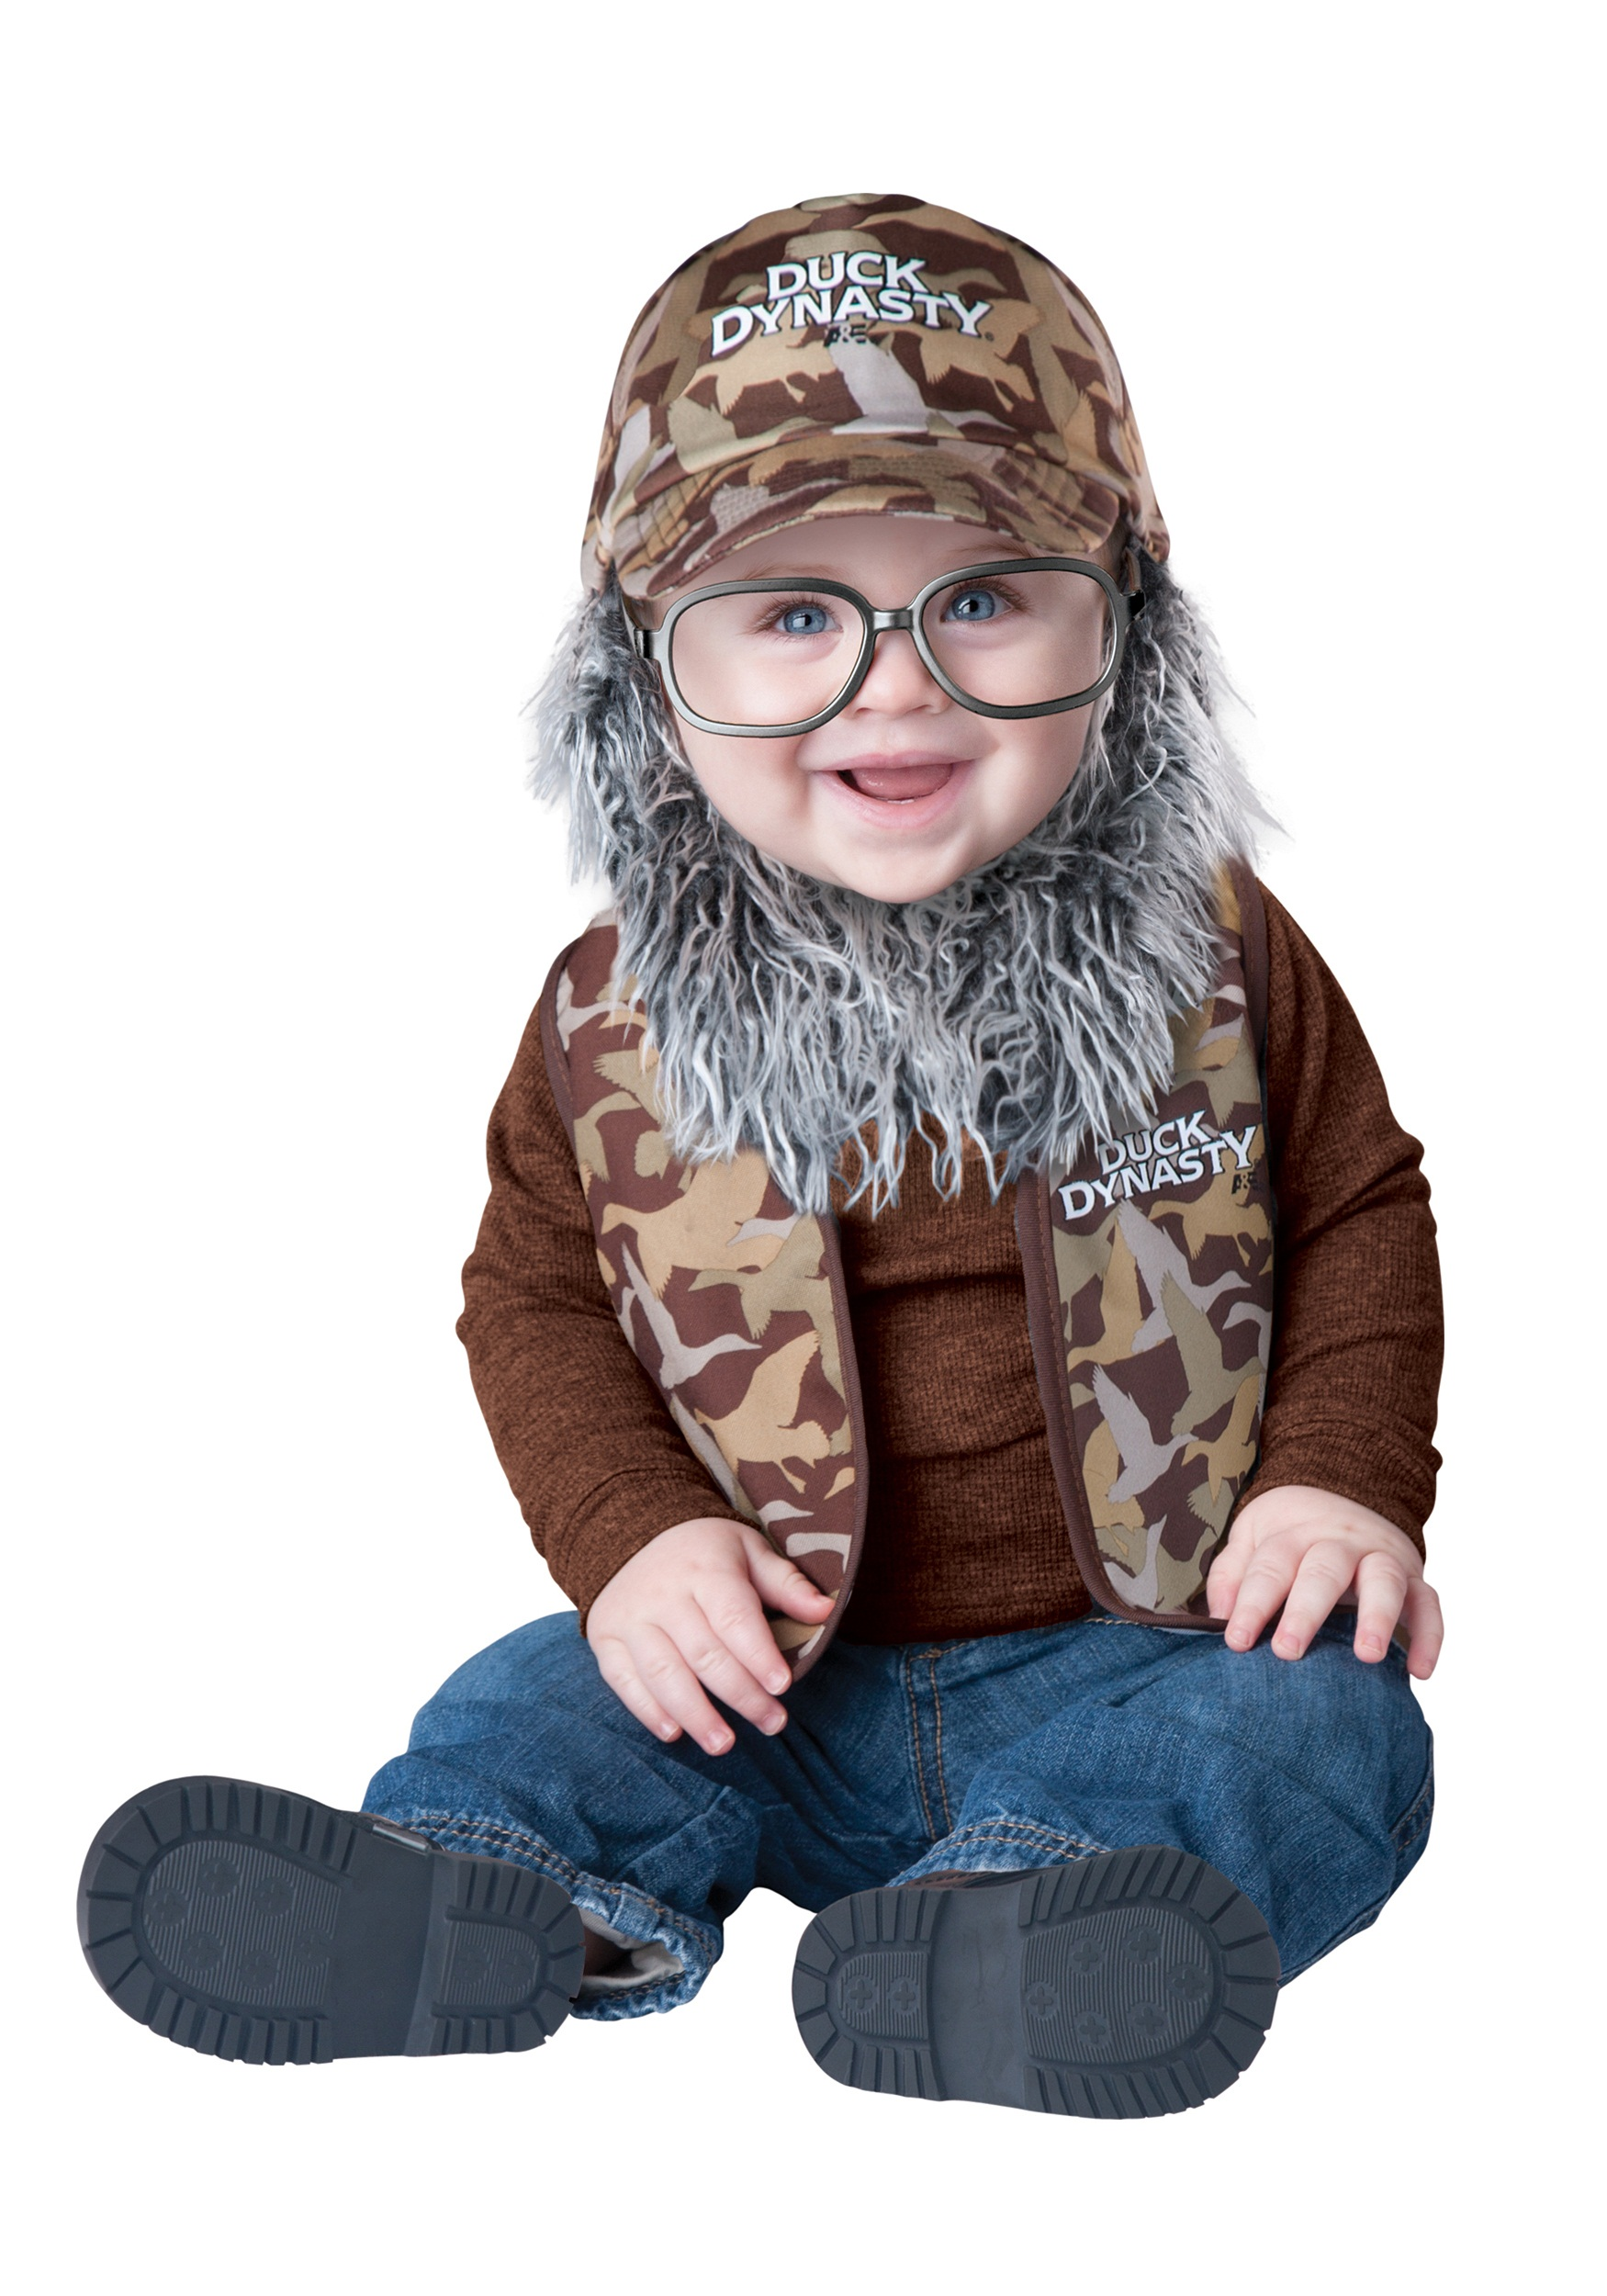 Duck Dynasty Infant Uncle Si Costume  sc 1 st  Halloween Costumes & Duck Dynasty Infant Uncle Si Costume - Halloween Costumes